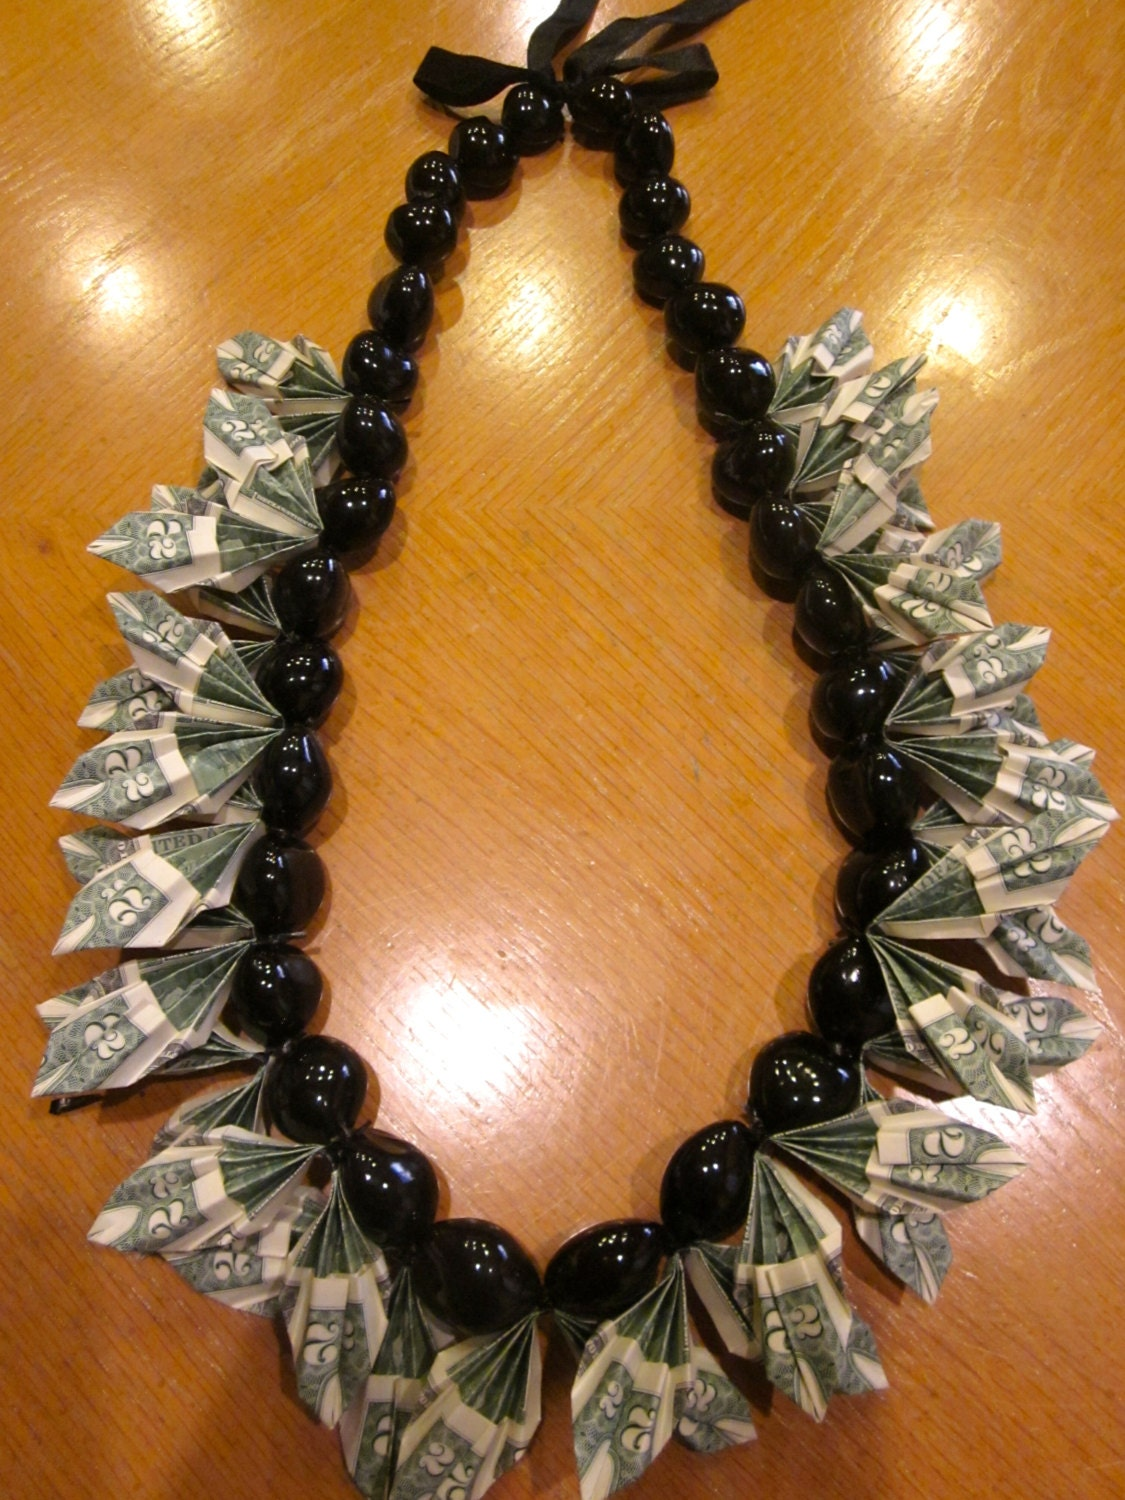 Lei Can Be Made With Construction Paper Yarn Solid: How Can I Make A Money Lei